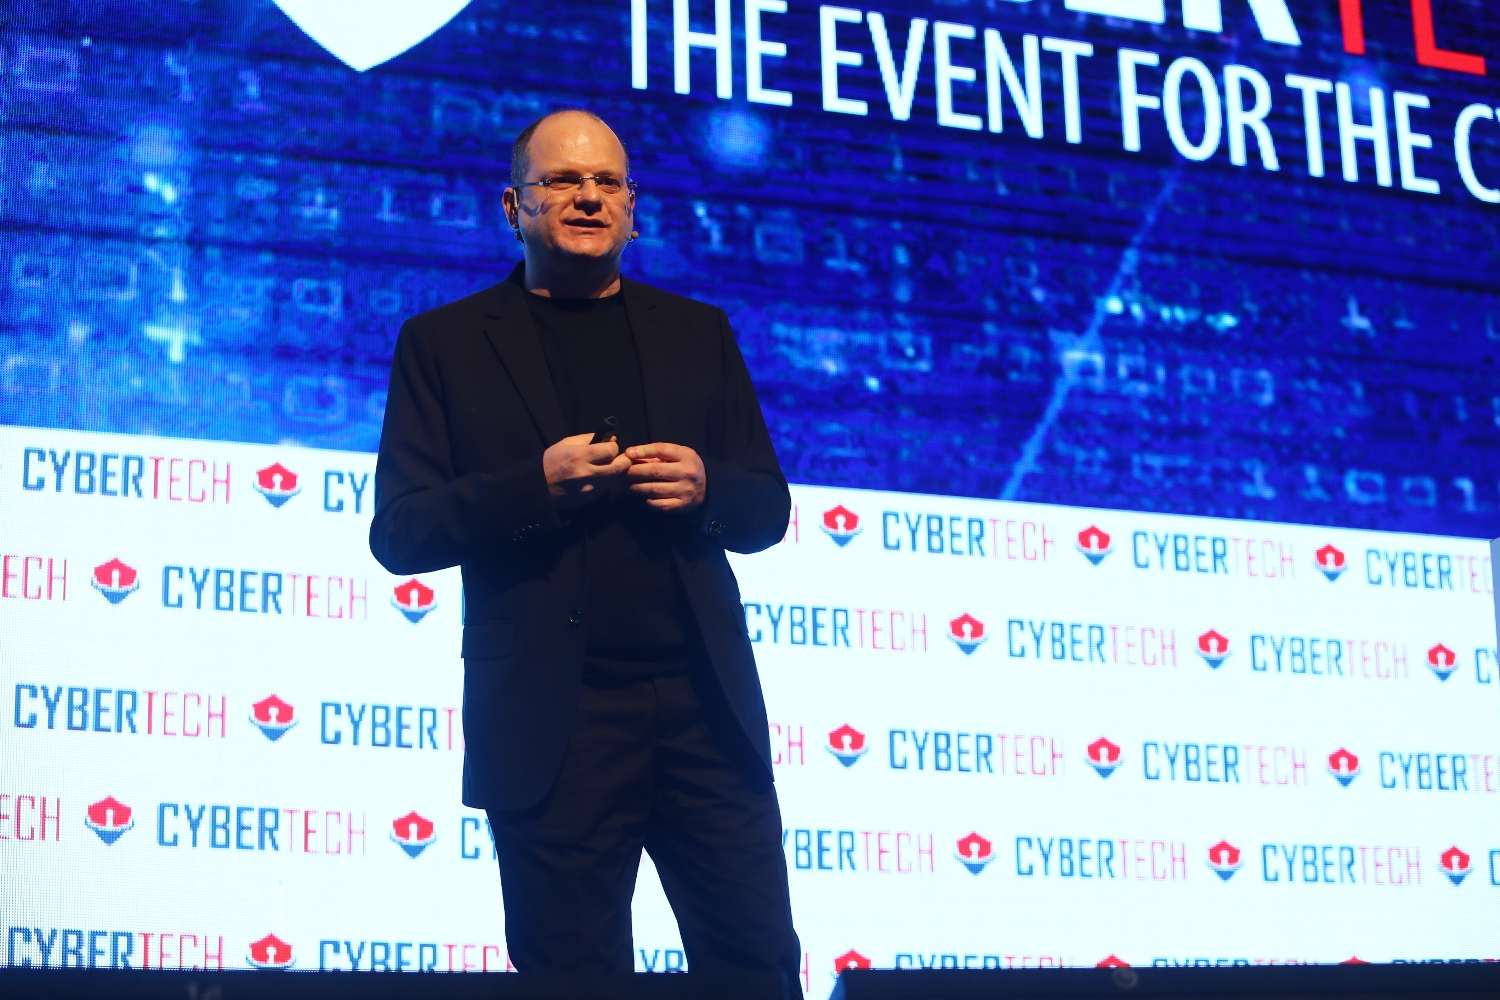 Gil Shwed, founder and CEO of Check Point Software Technologies, a pioneer of firewall security, speaking at Cybertech 2017. Photo by Gilad Kavalerchik